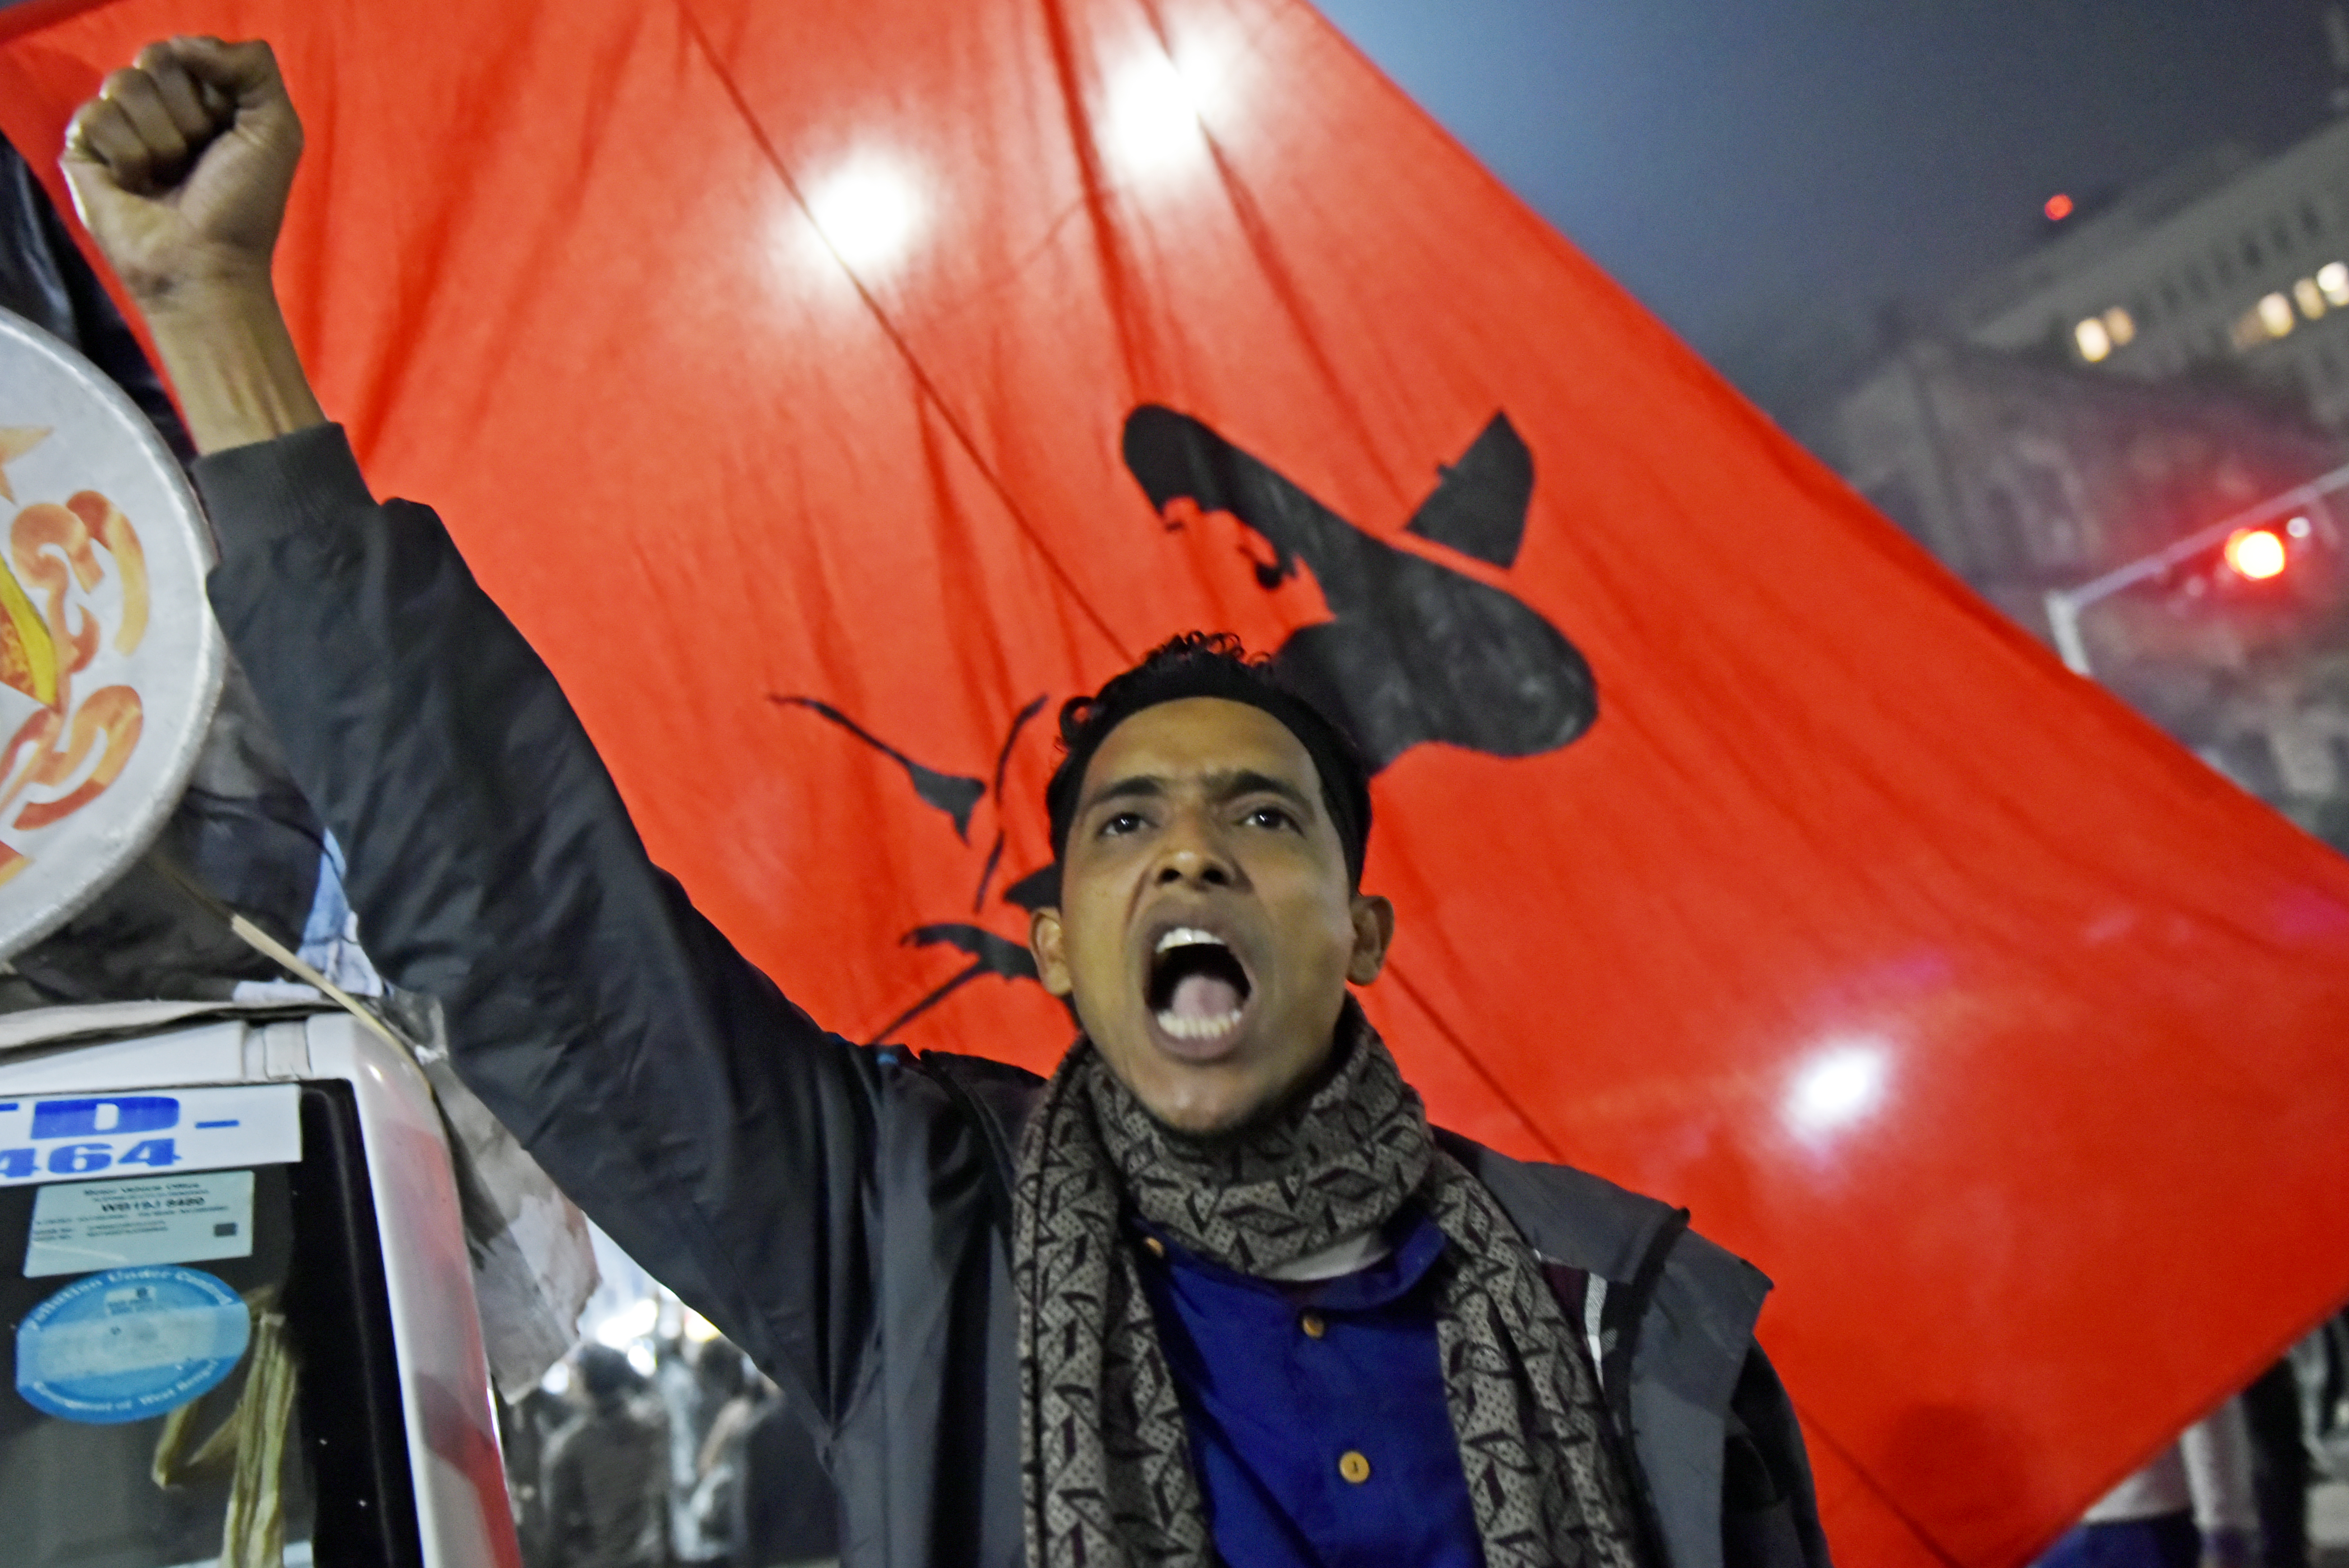 A protester shouts and raises a fist in front of a red flag.